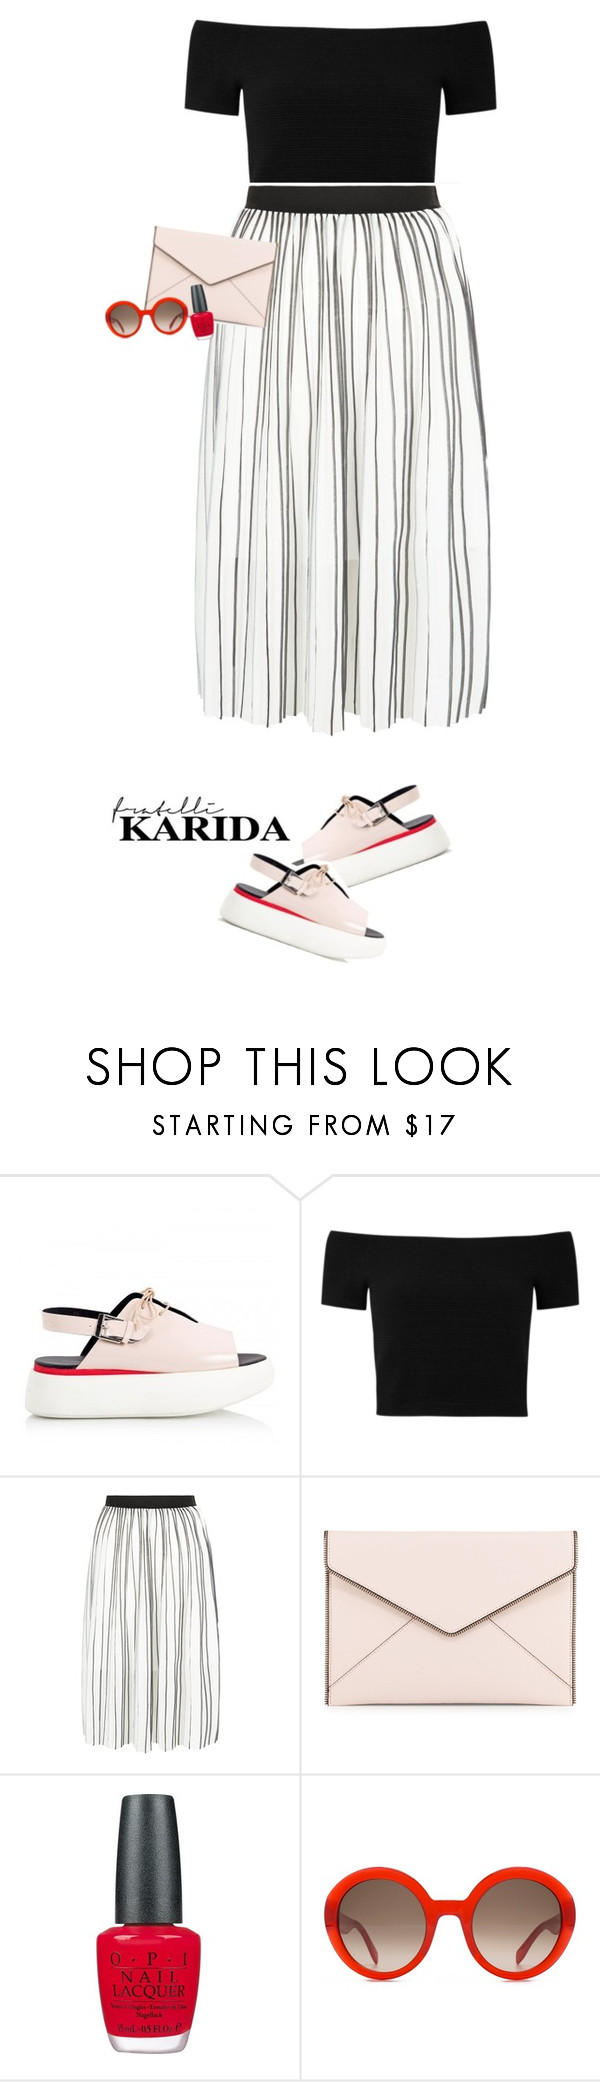 """""""Fratelli Karida shoes"""" by ellyg91 ❤ liked on Polyvore featuring Alberto Guardiani, Alice + Olivia, New Look, Rebecca Minkoff, OPI, Alexander McQueen and shoes"""